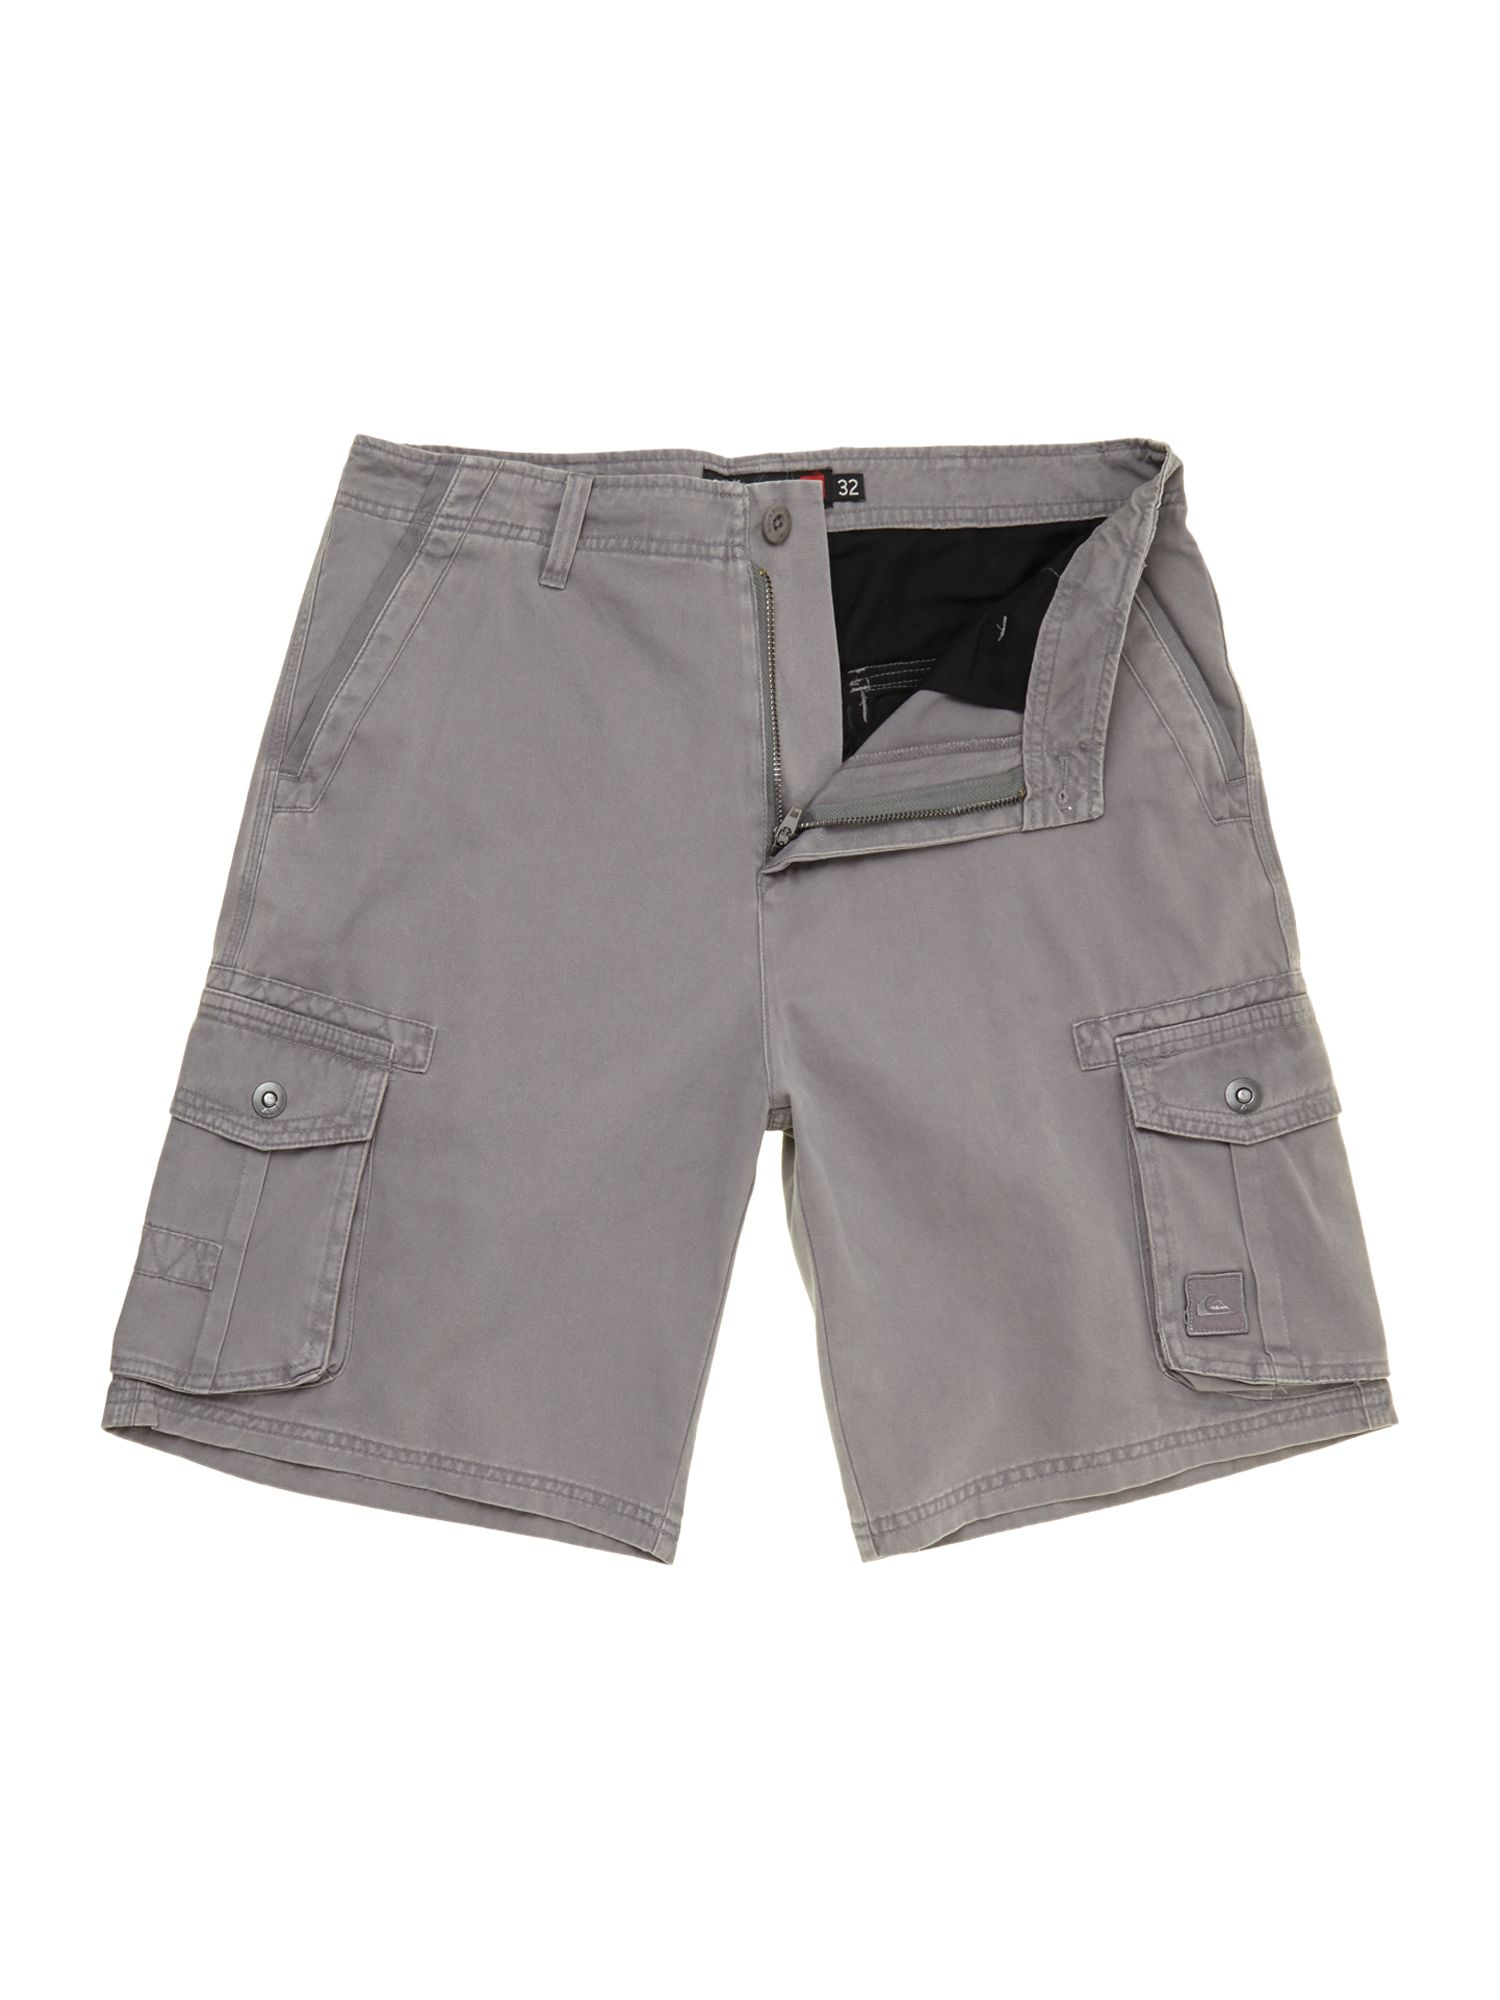 Deluxe 21 shorts